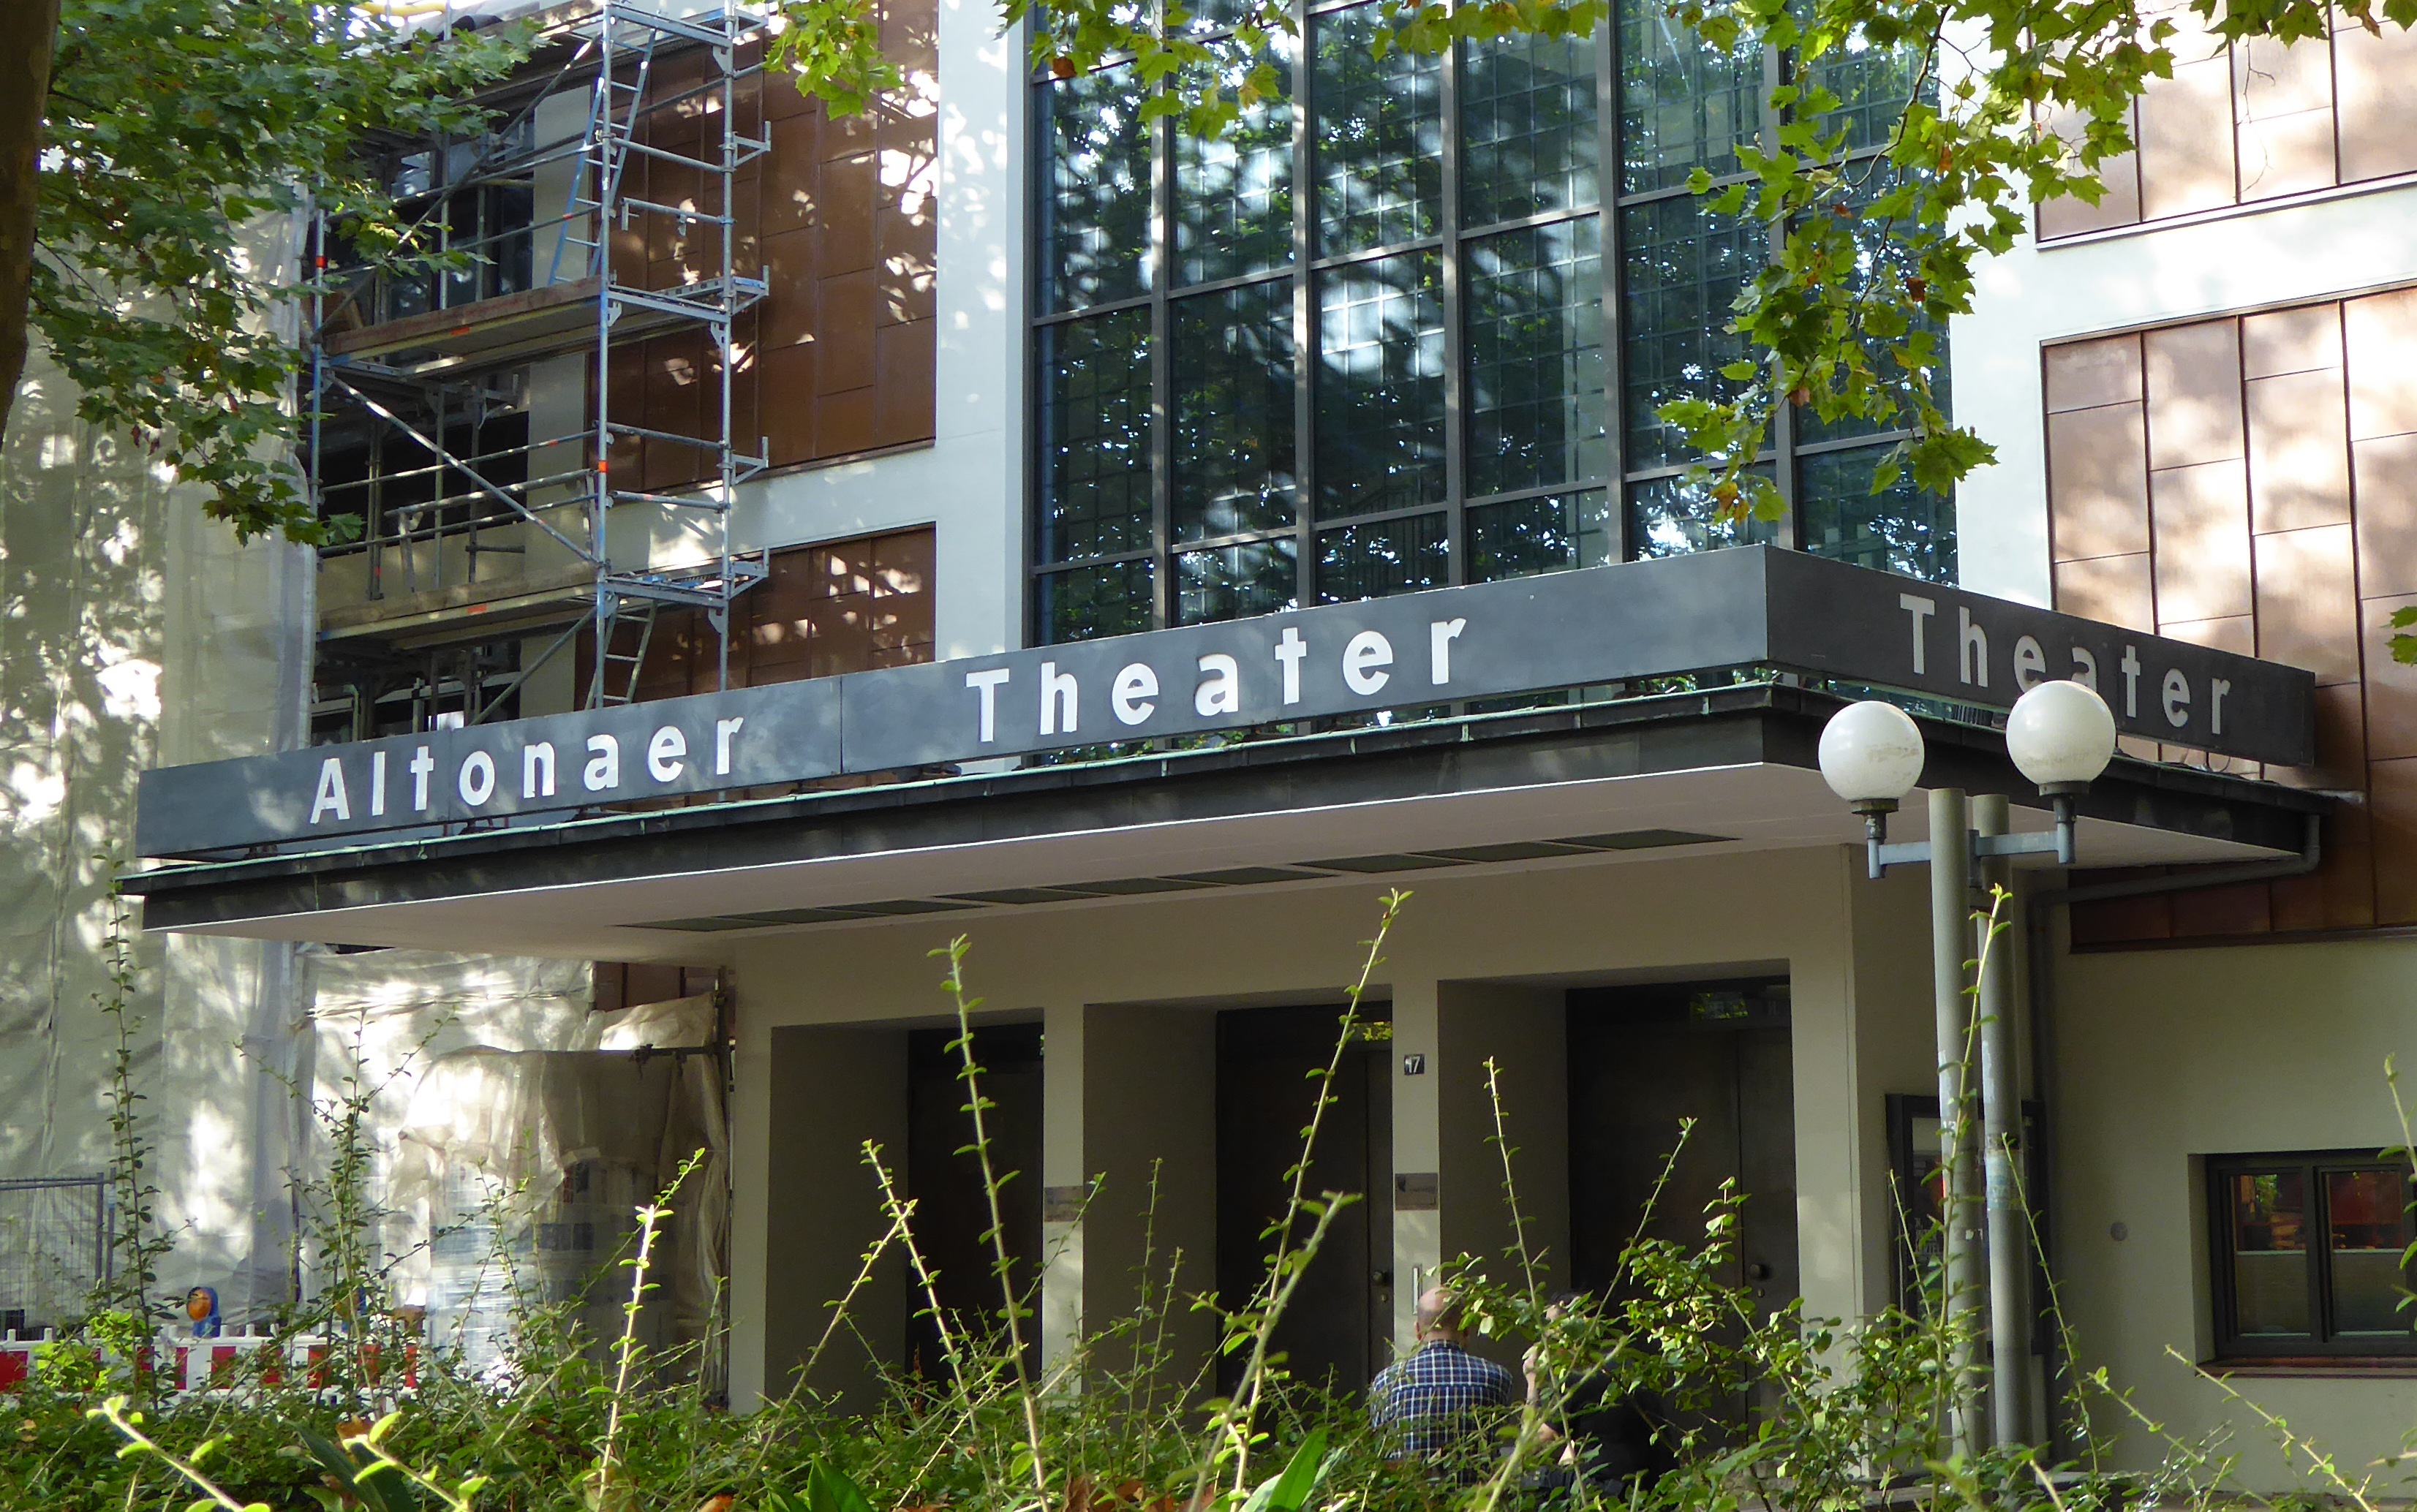 Altonaer Theater, Hamburg